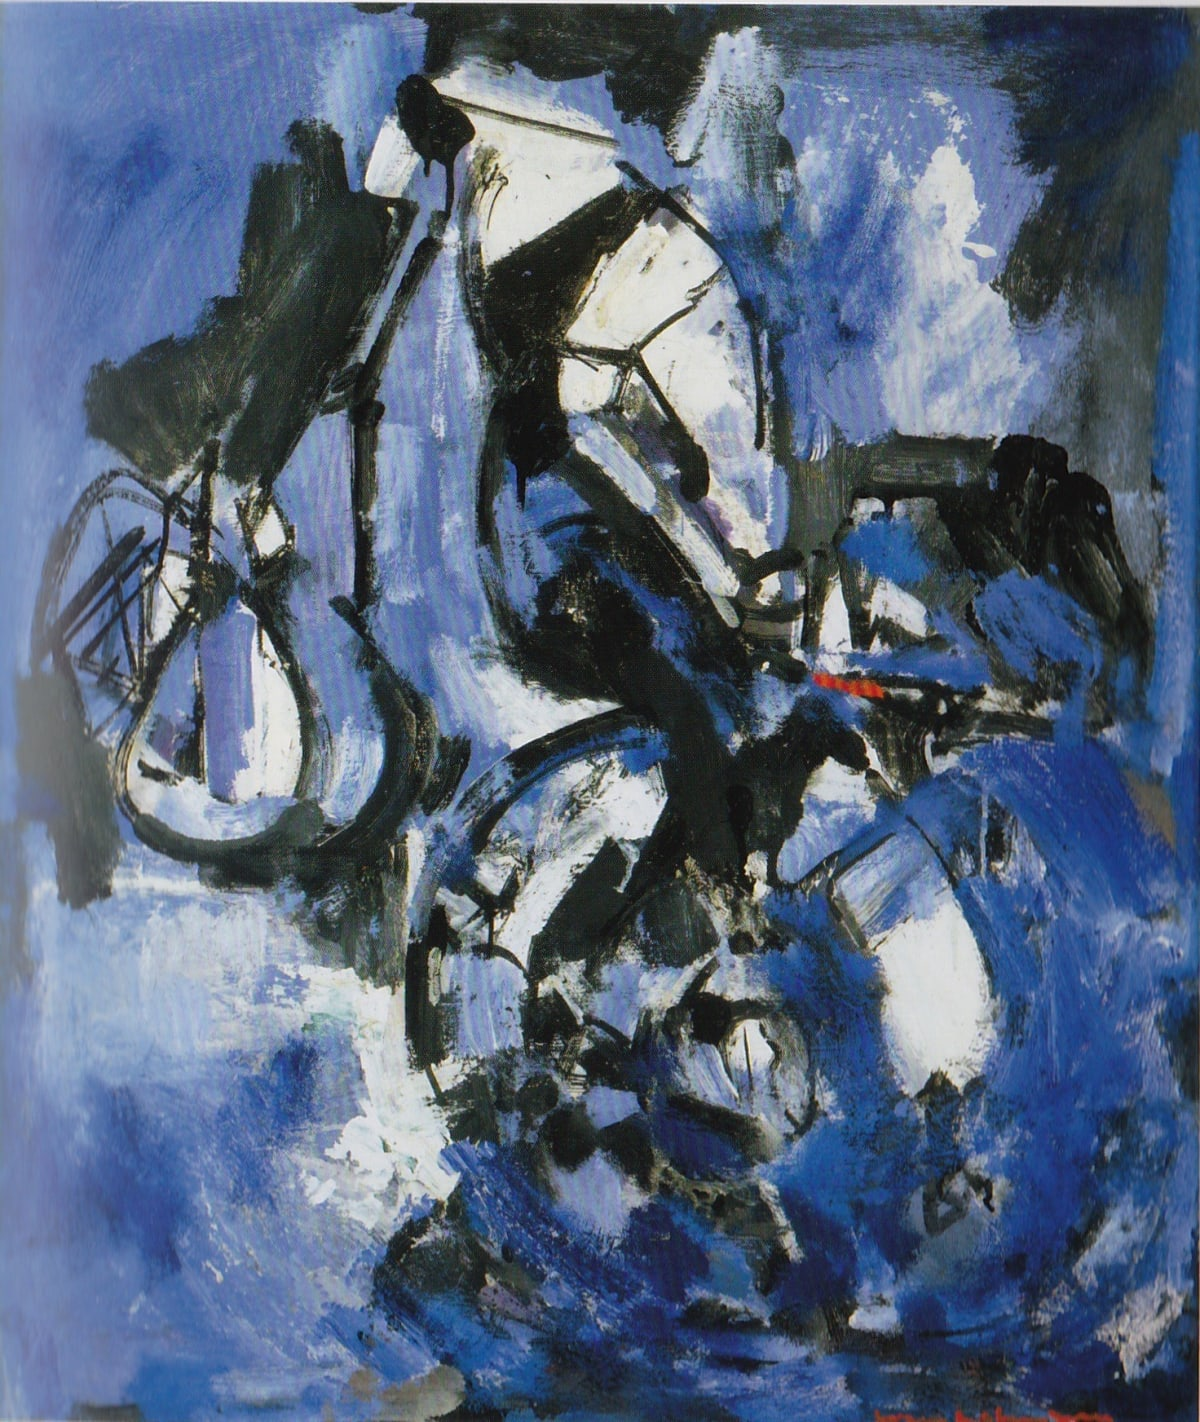 Hans HOFMANN (1880 – 1966) Balance in Black, Blue and White, 1947 Oil on Panel 35 x 30 inches / 88.9 x 76.2 cm Signed lower right Hans Hofmann Painting on verso HH Cat No 519-1947